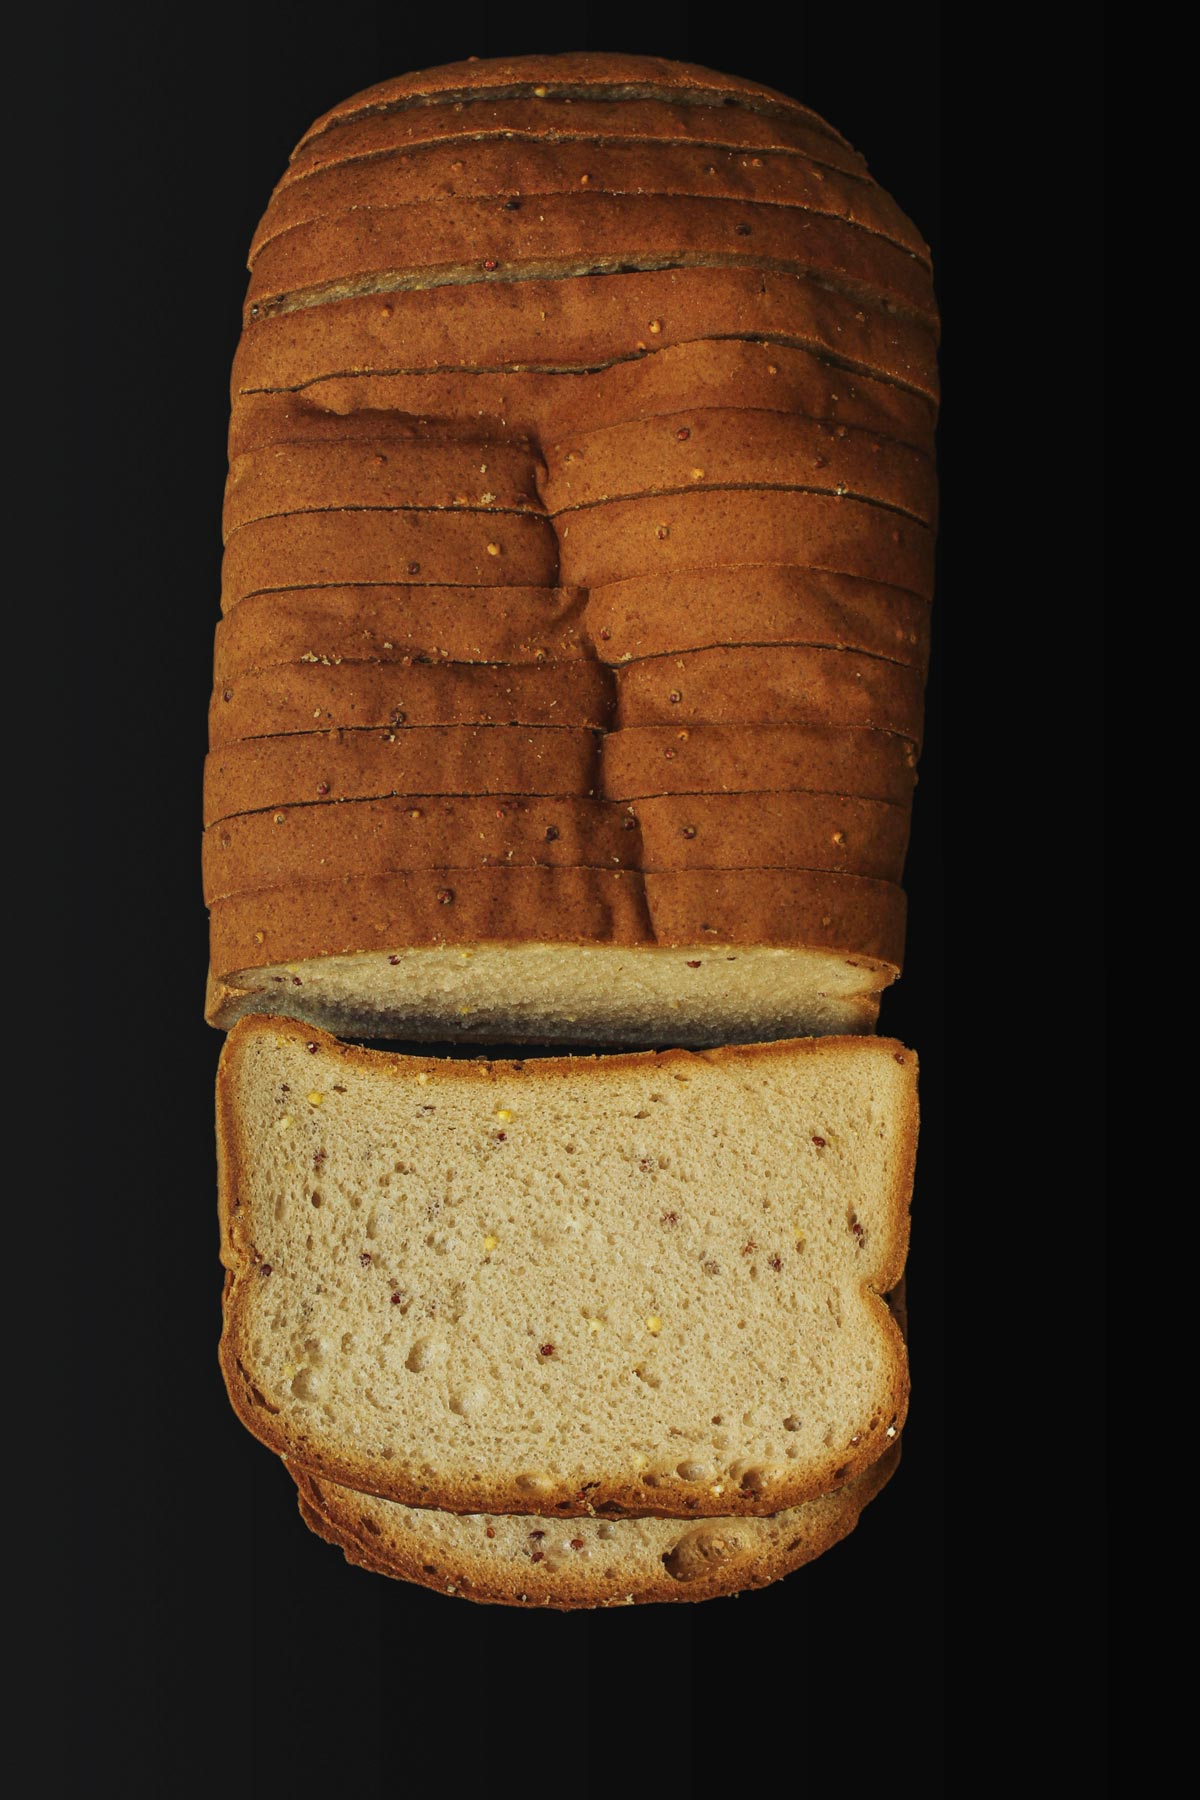 loaf of gluten free sandwich bread out of packaging on black table top.